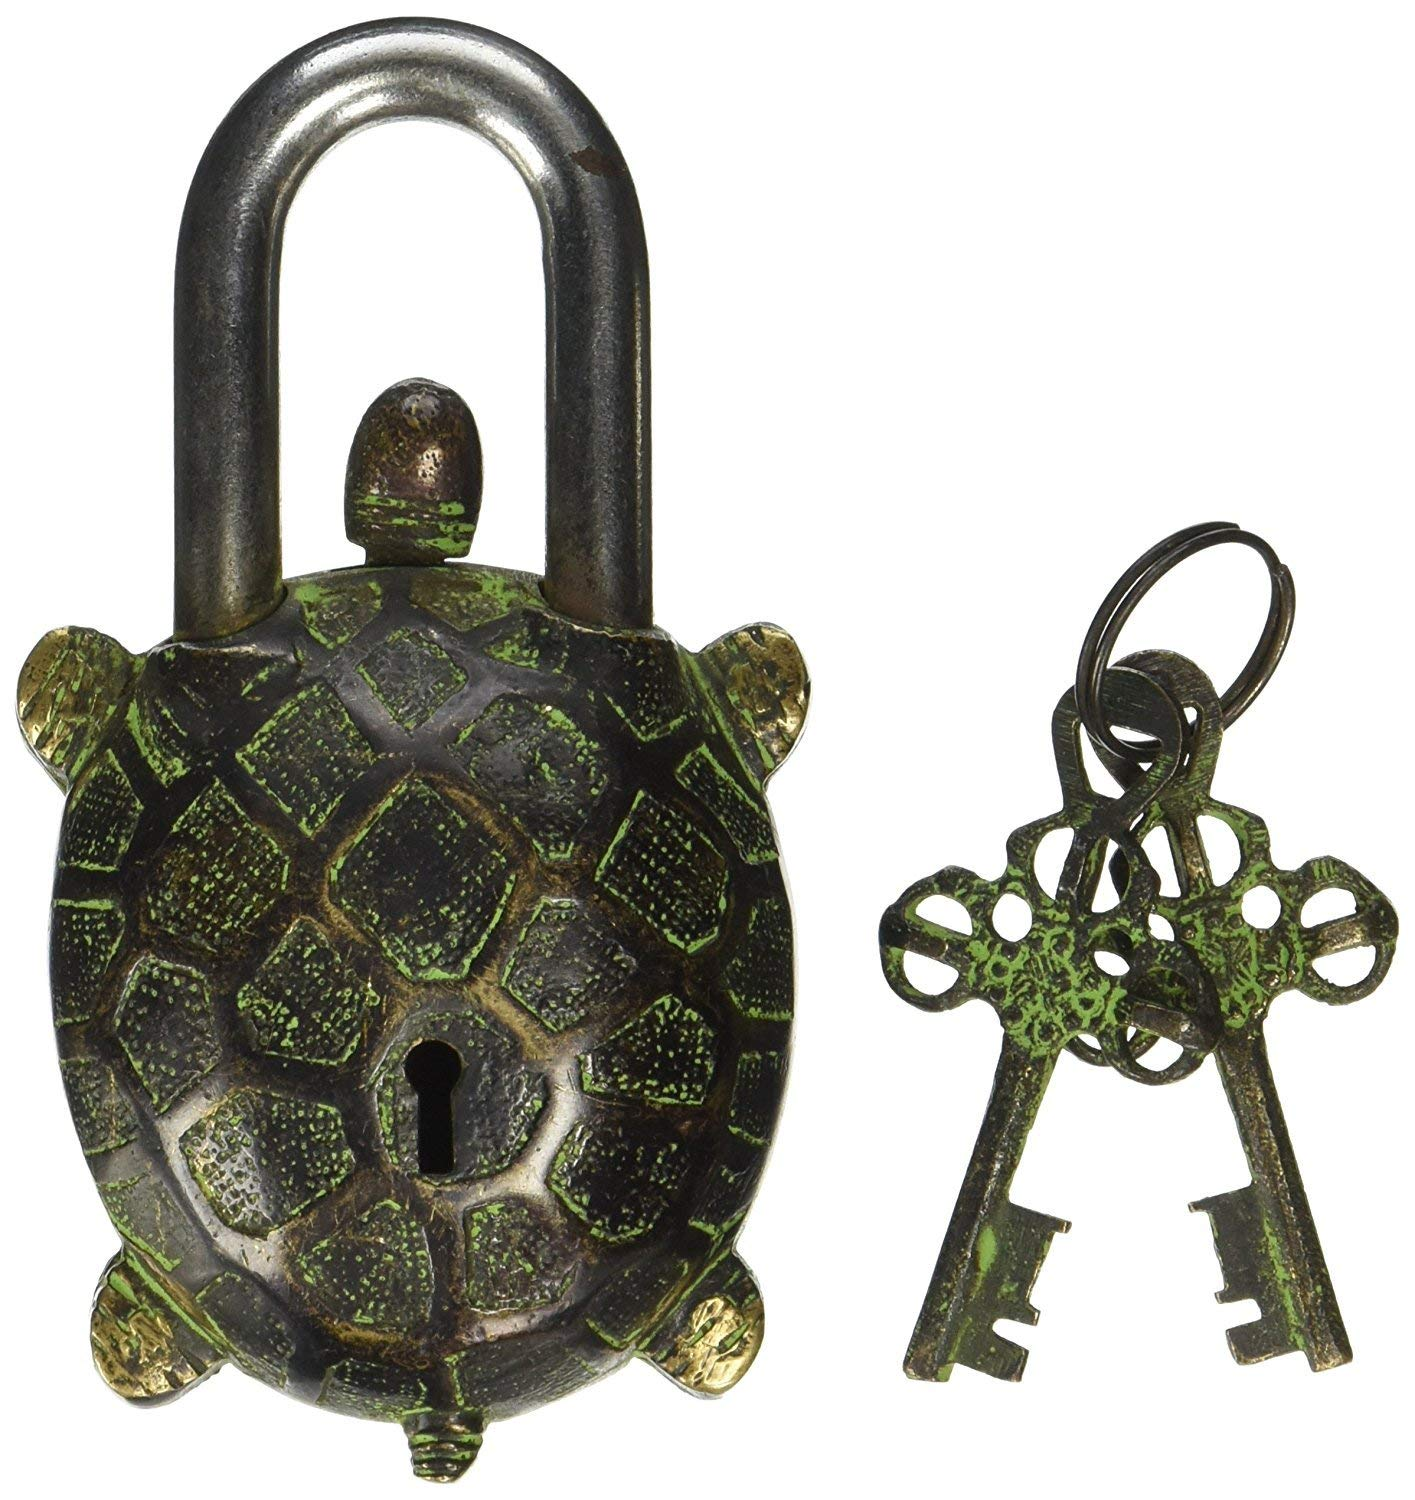 PARIJAT HANDICRAFT Turtle Monastery Lock - Solid Brass with Antique Finished in a Beautifully Ornate Padlock. Ornamental Antique Handcrafted Locks for Security and Style